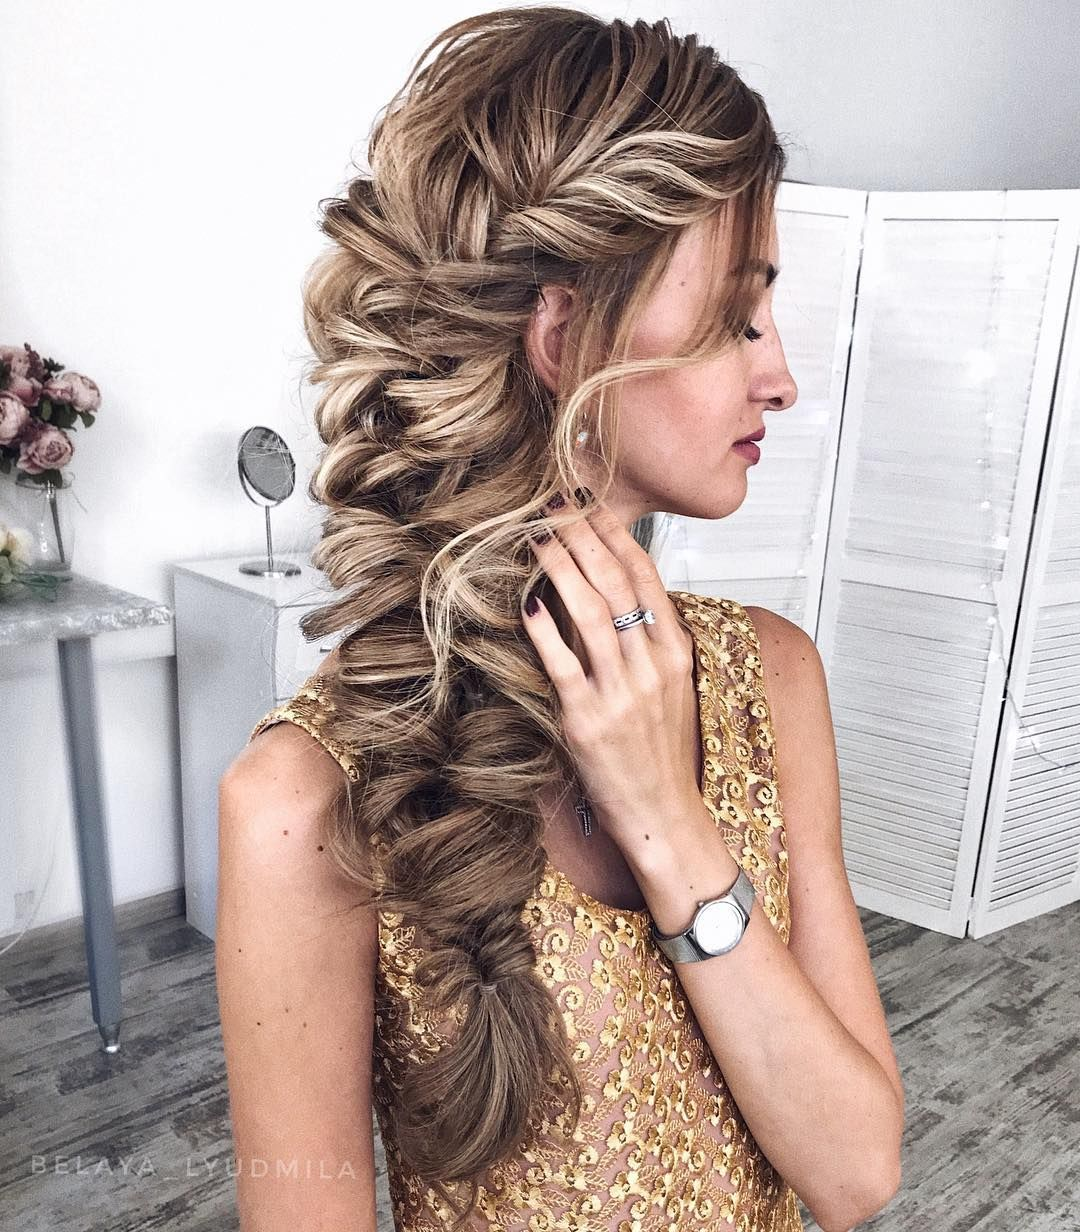 47 Braided Hairstyle Inspiration Braids Hairstyles Braided Ponytails Textured Braids Hairstyle Hair Bra Long Hair Styles Womens Hairstyles Hair Styles